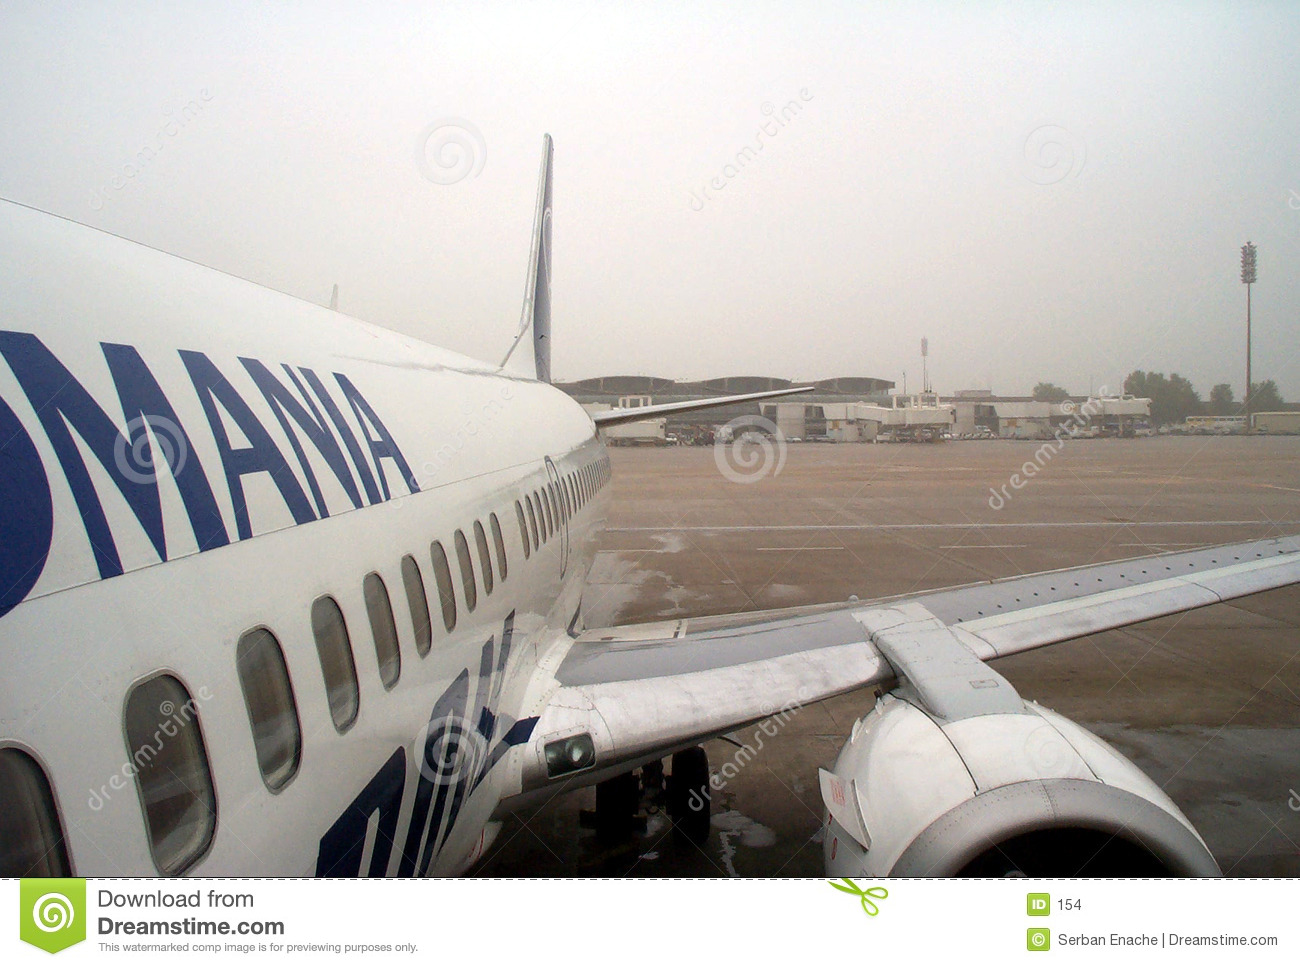 Airplane and airport